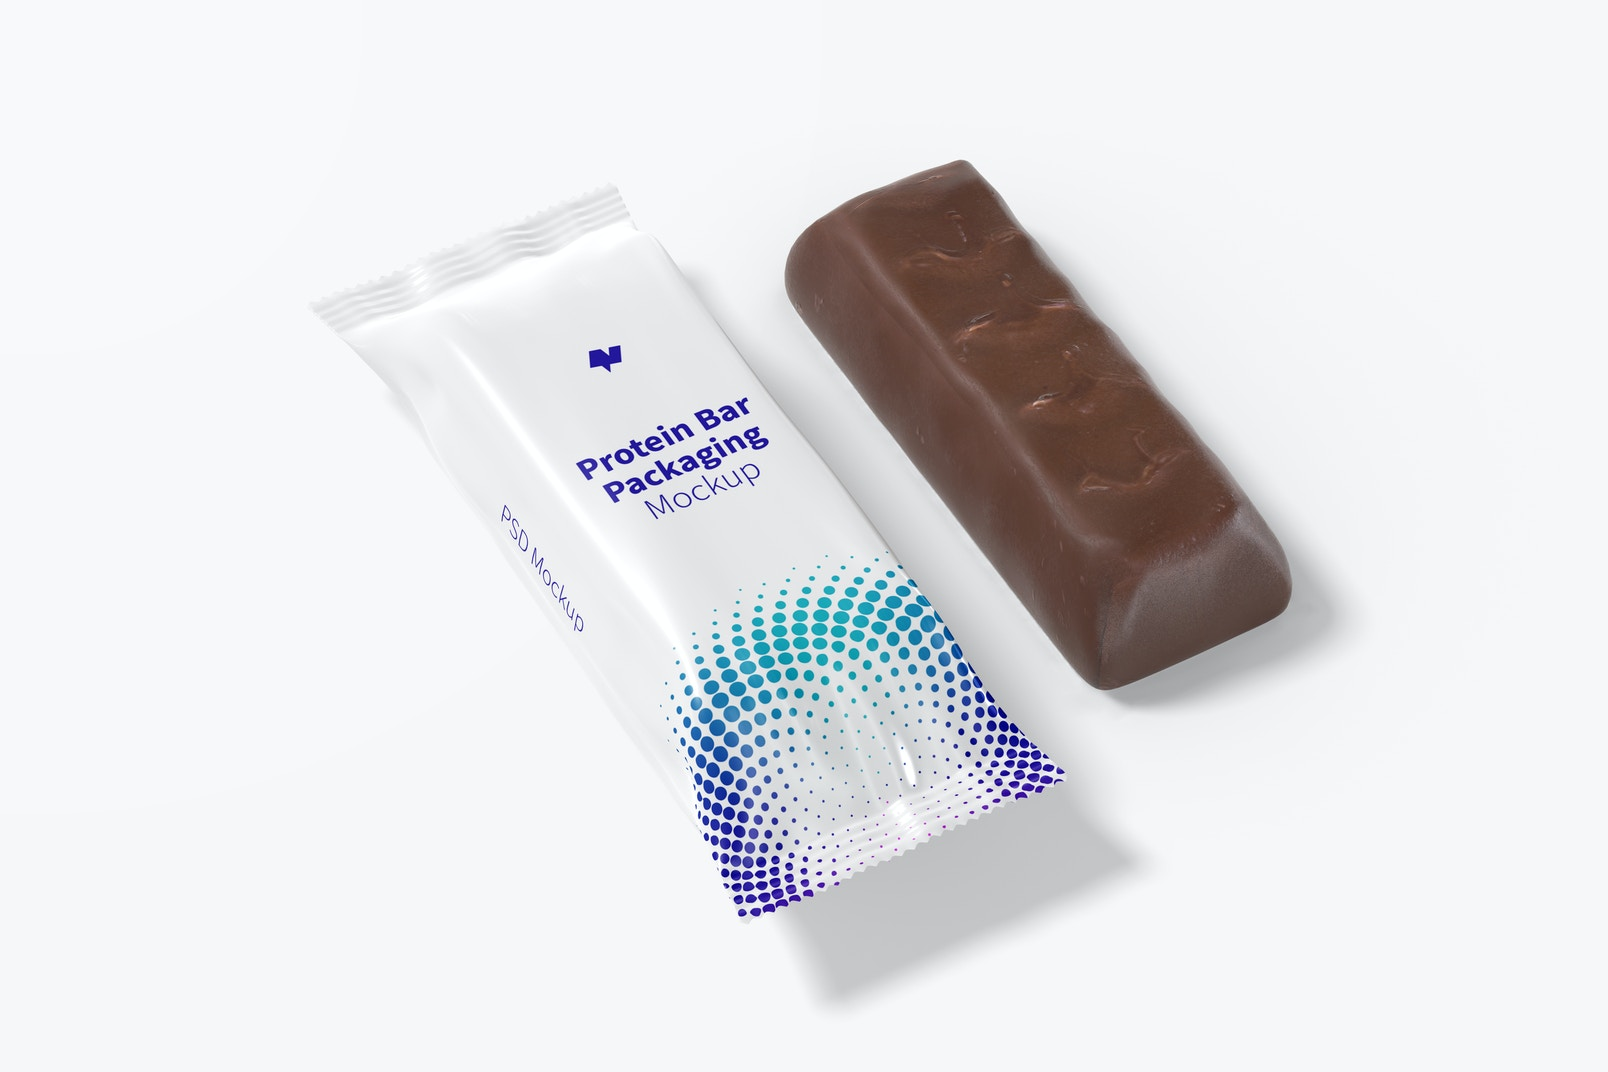 Protein Bar Packaging Mockup, Left View